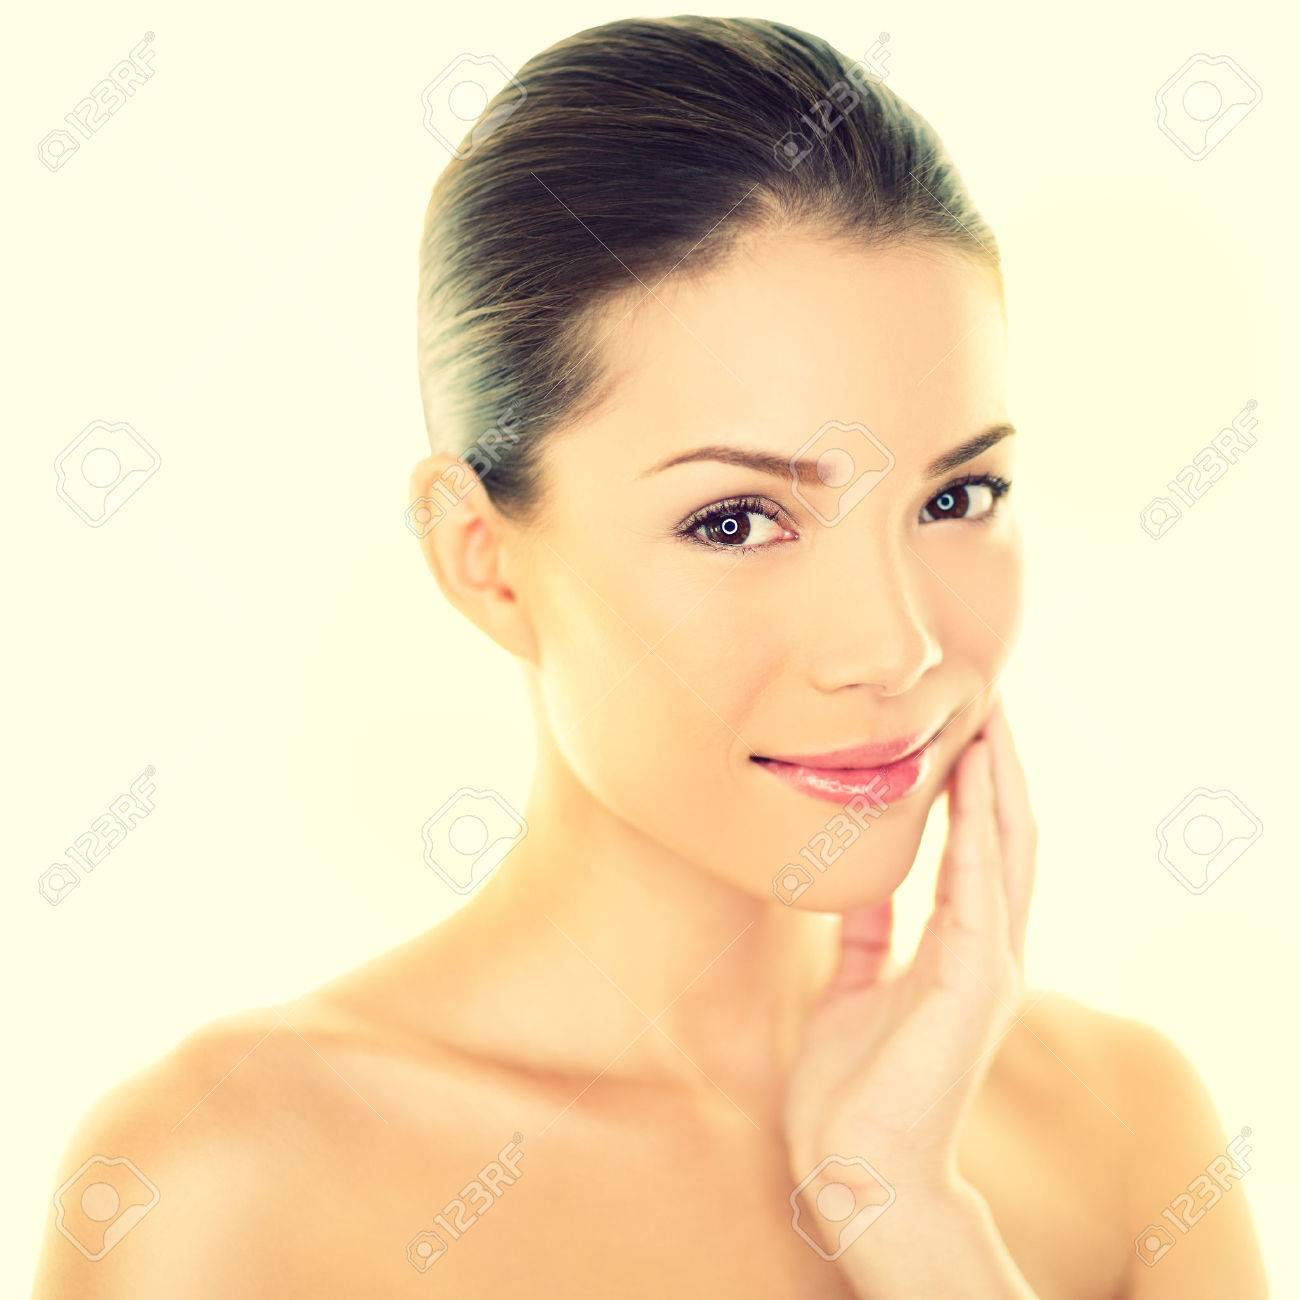 Woman Beauty Skincare Woman Touching Perfect Skin On Face Beautiful Stock Photo Picture And Royalty Free Image Image 32709024